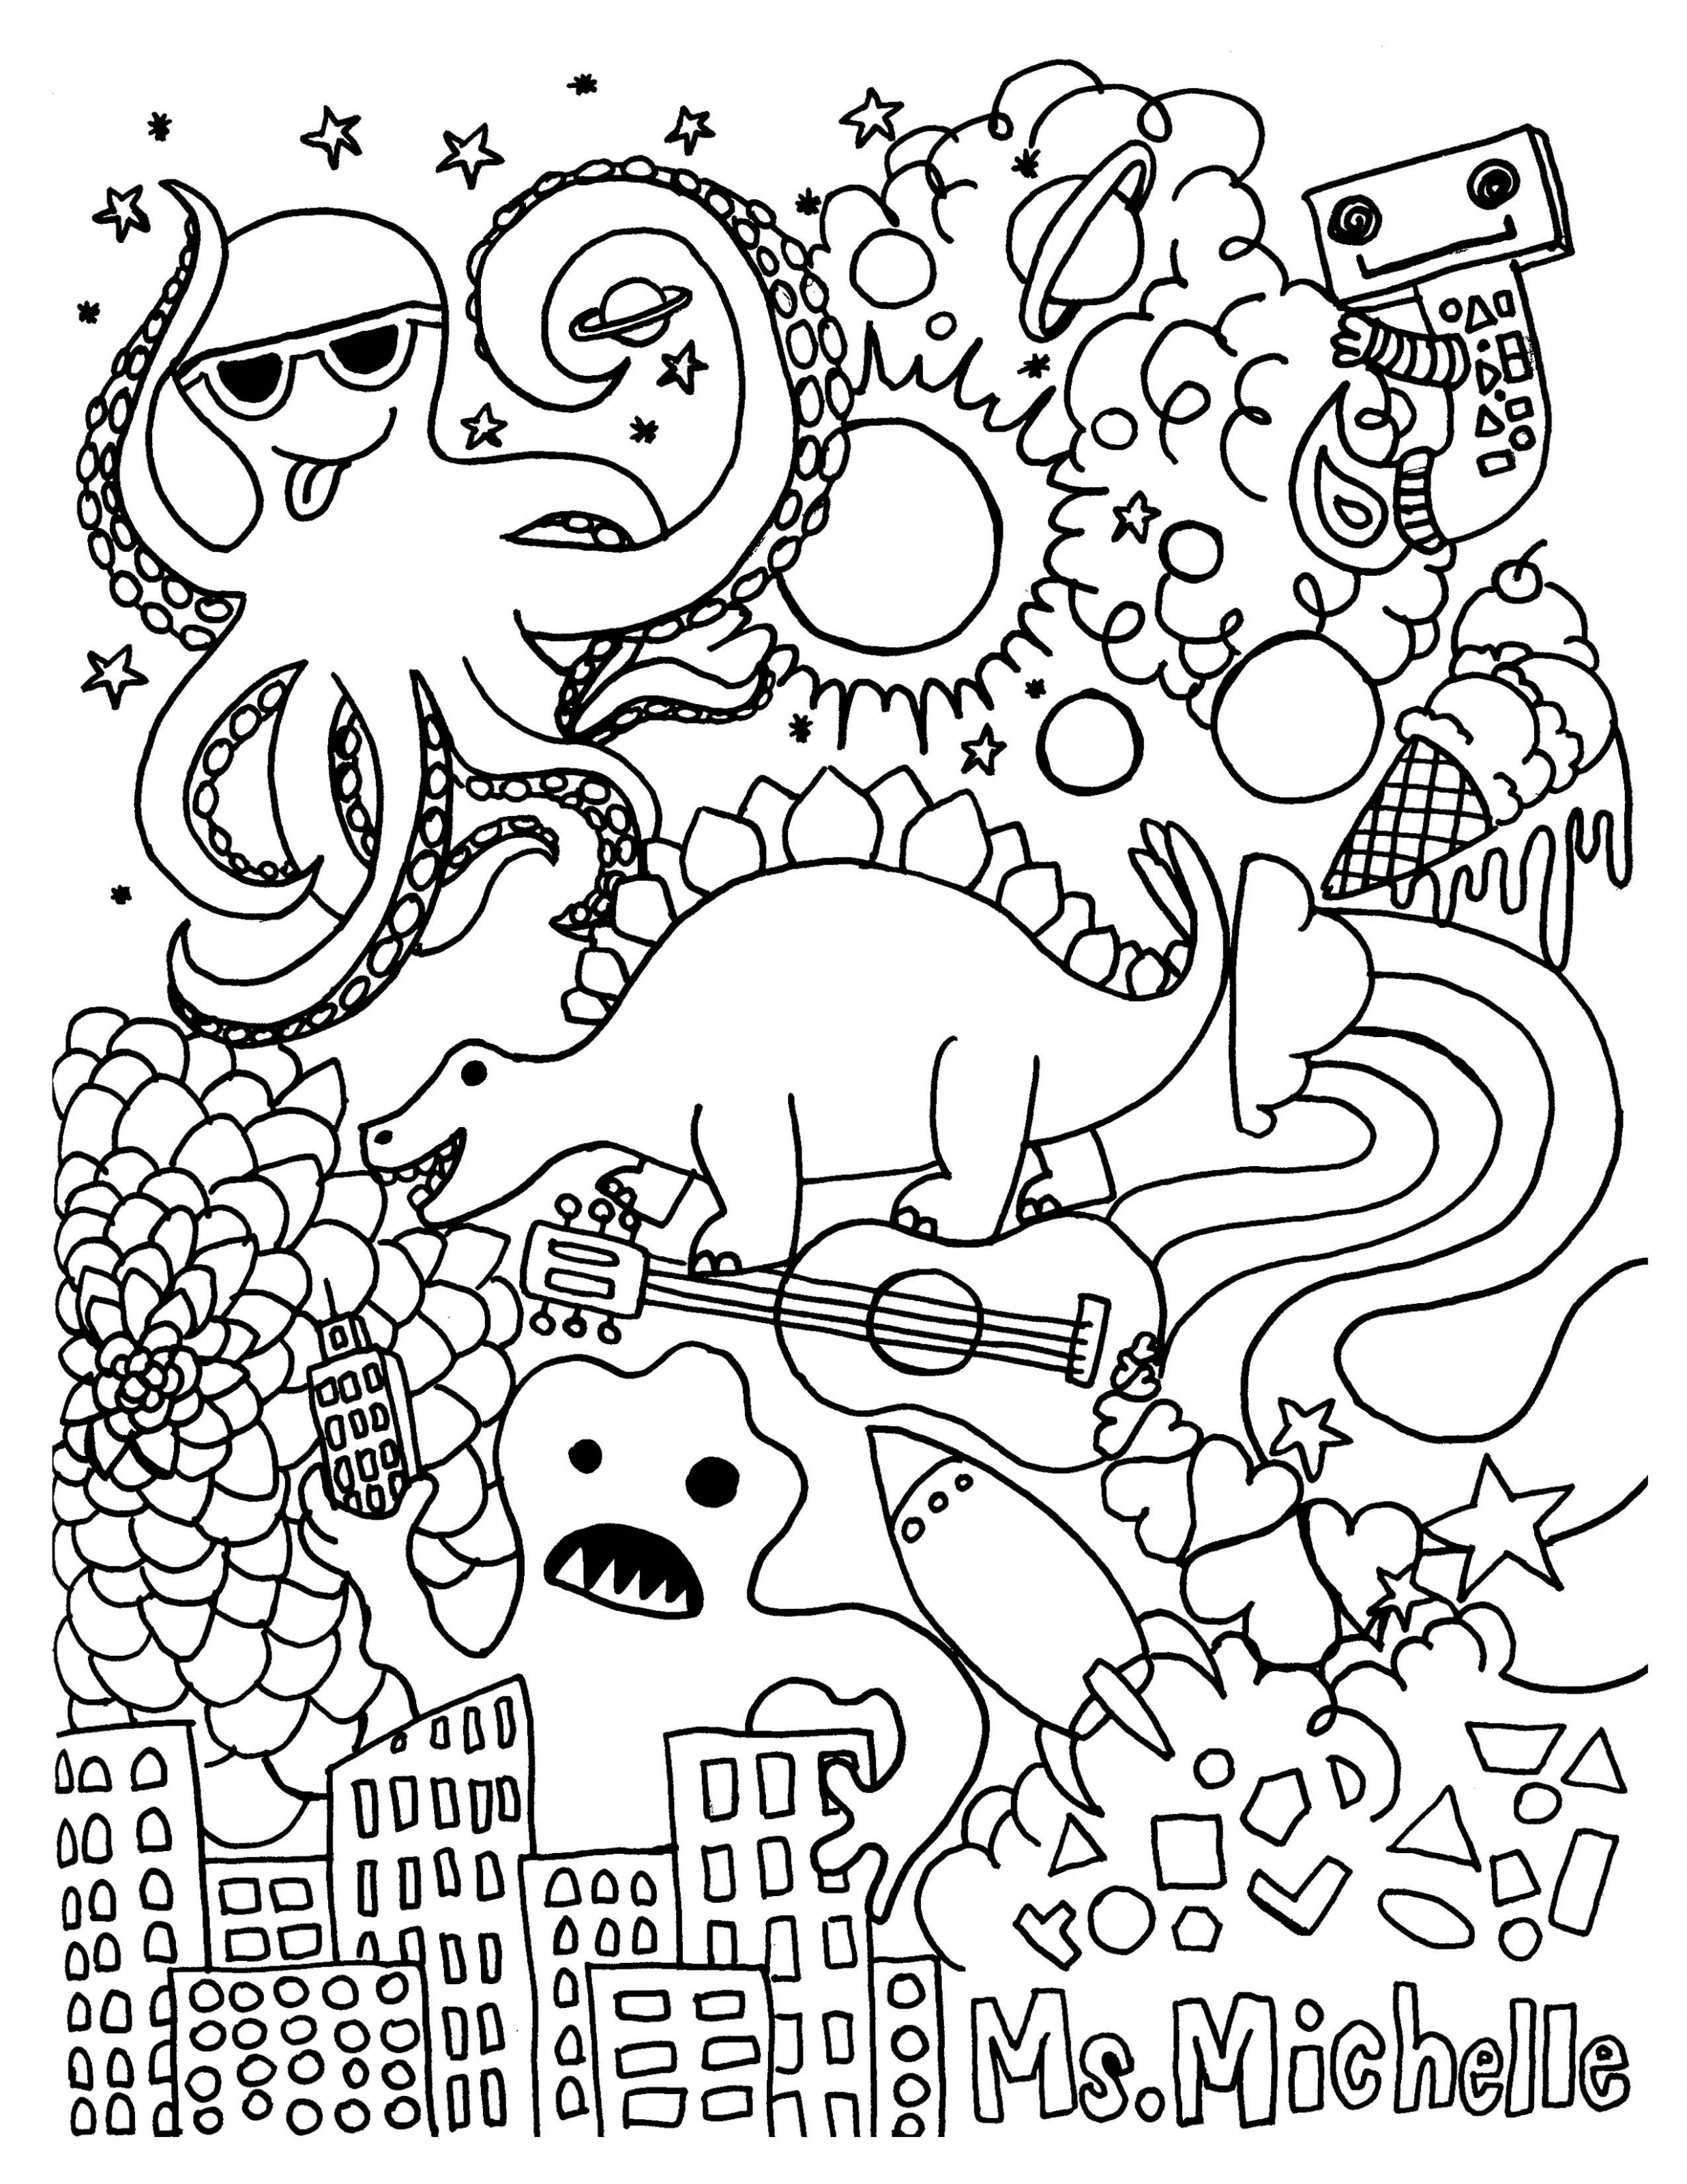 Best Of Free Christmas Math Coloring Pages Kids Worksheets Middle ..